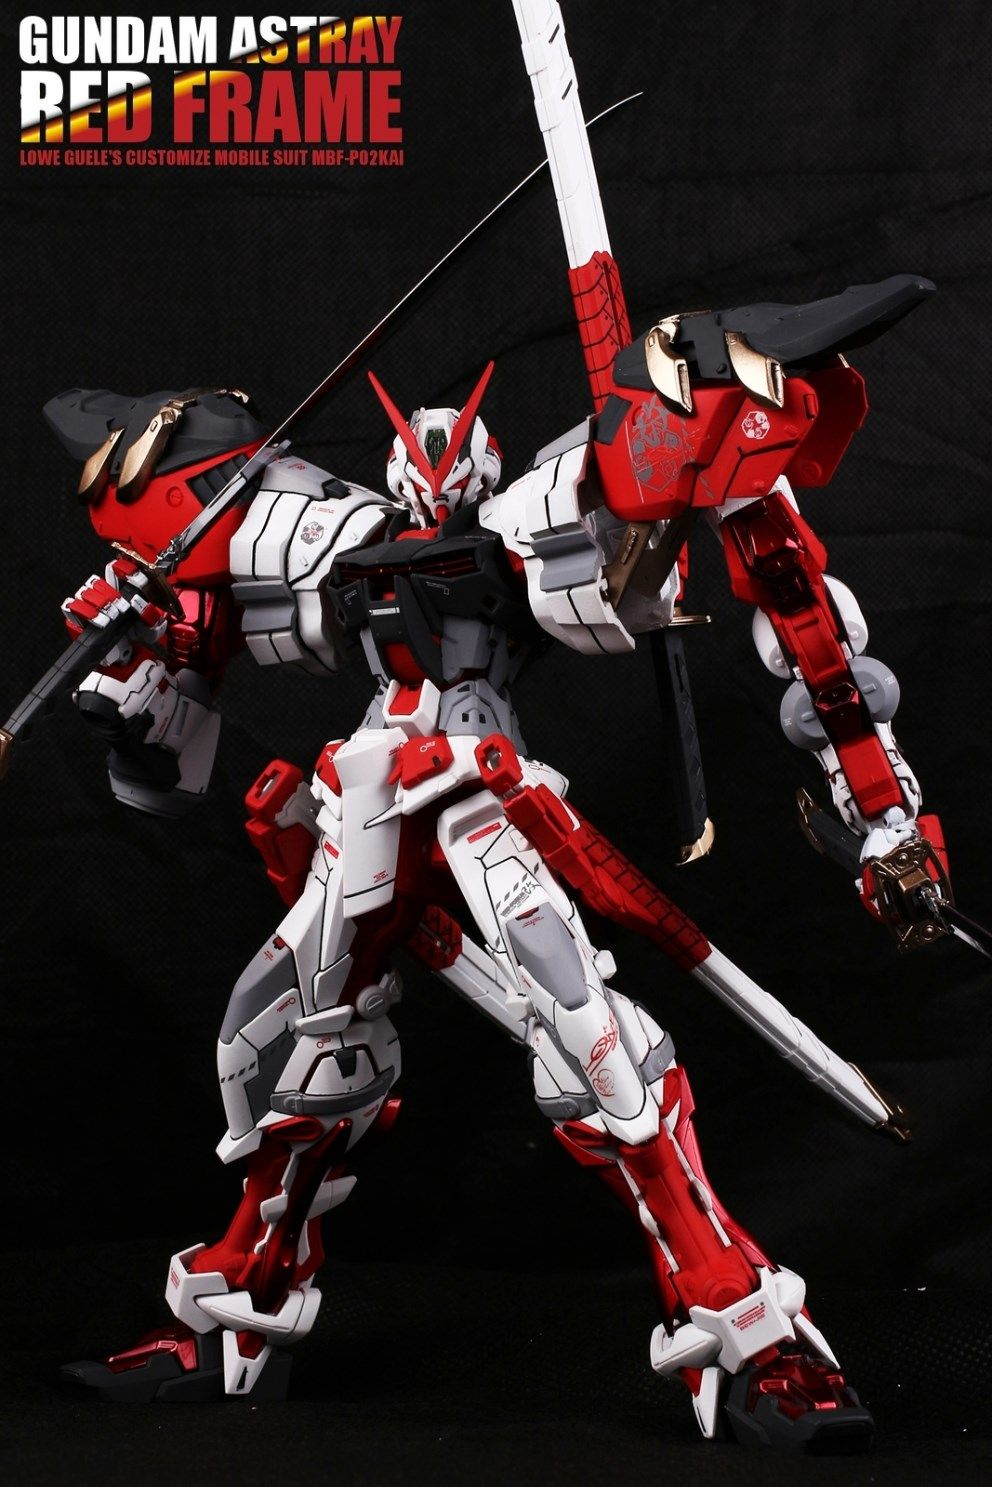 GUNDAM GUY: MG 1/100 Gundam Astray Red Frame 'Power Red Resin